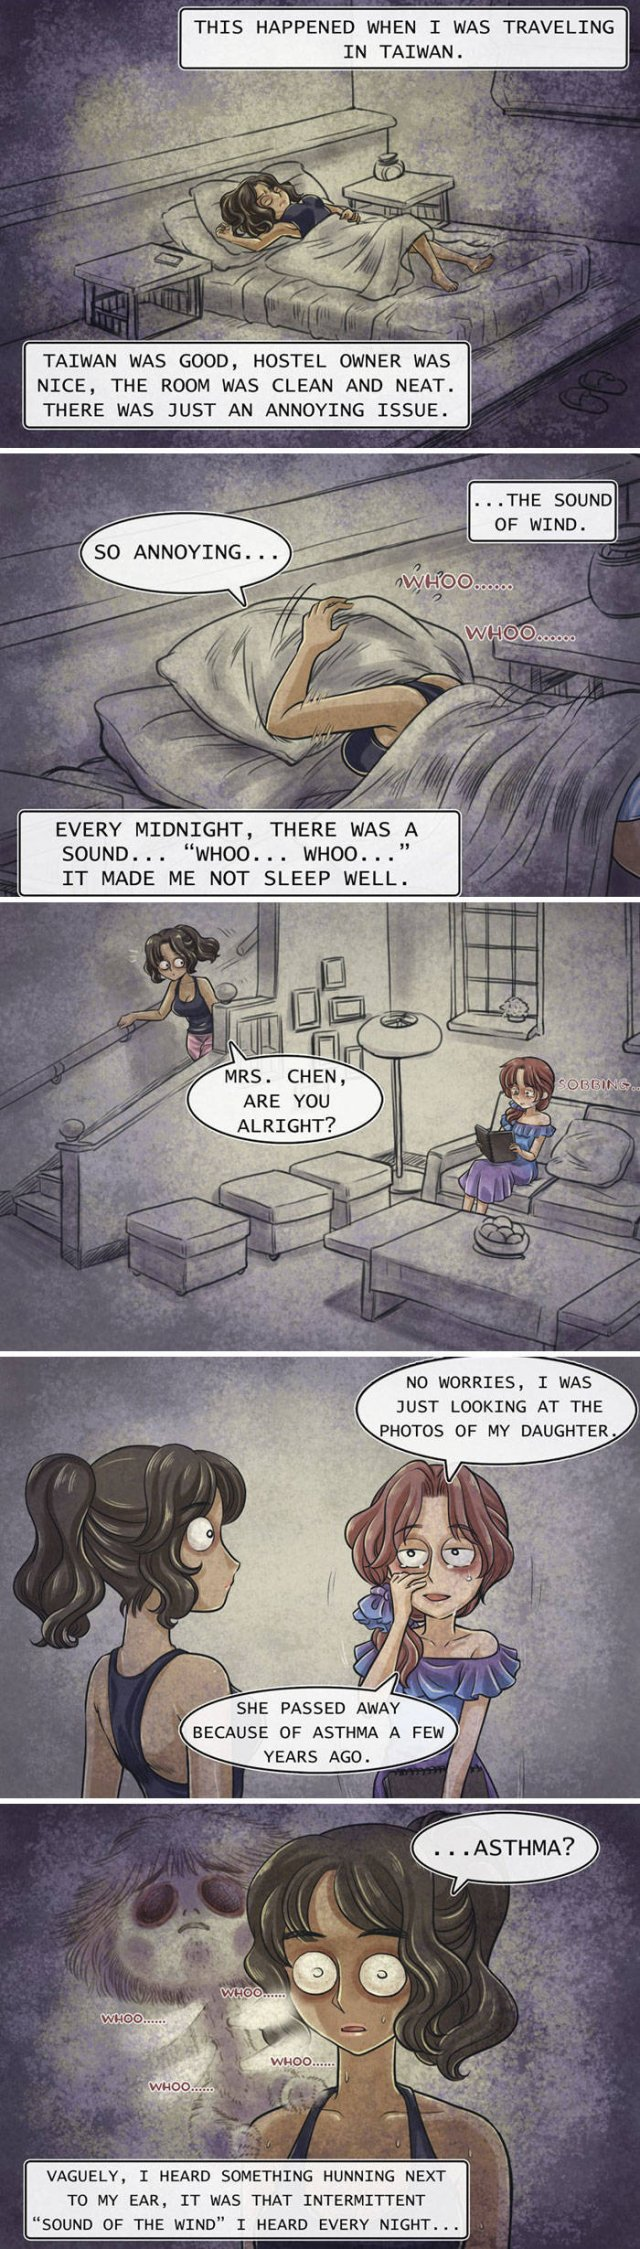 Very Scary Horror Comics With Unexpected Endings